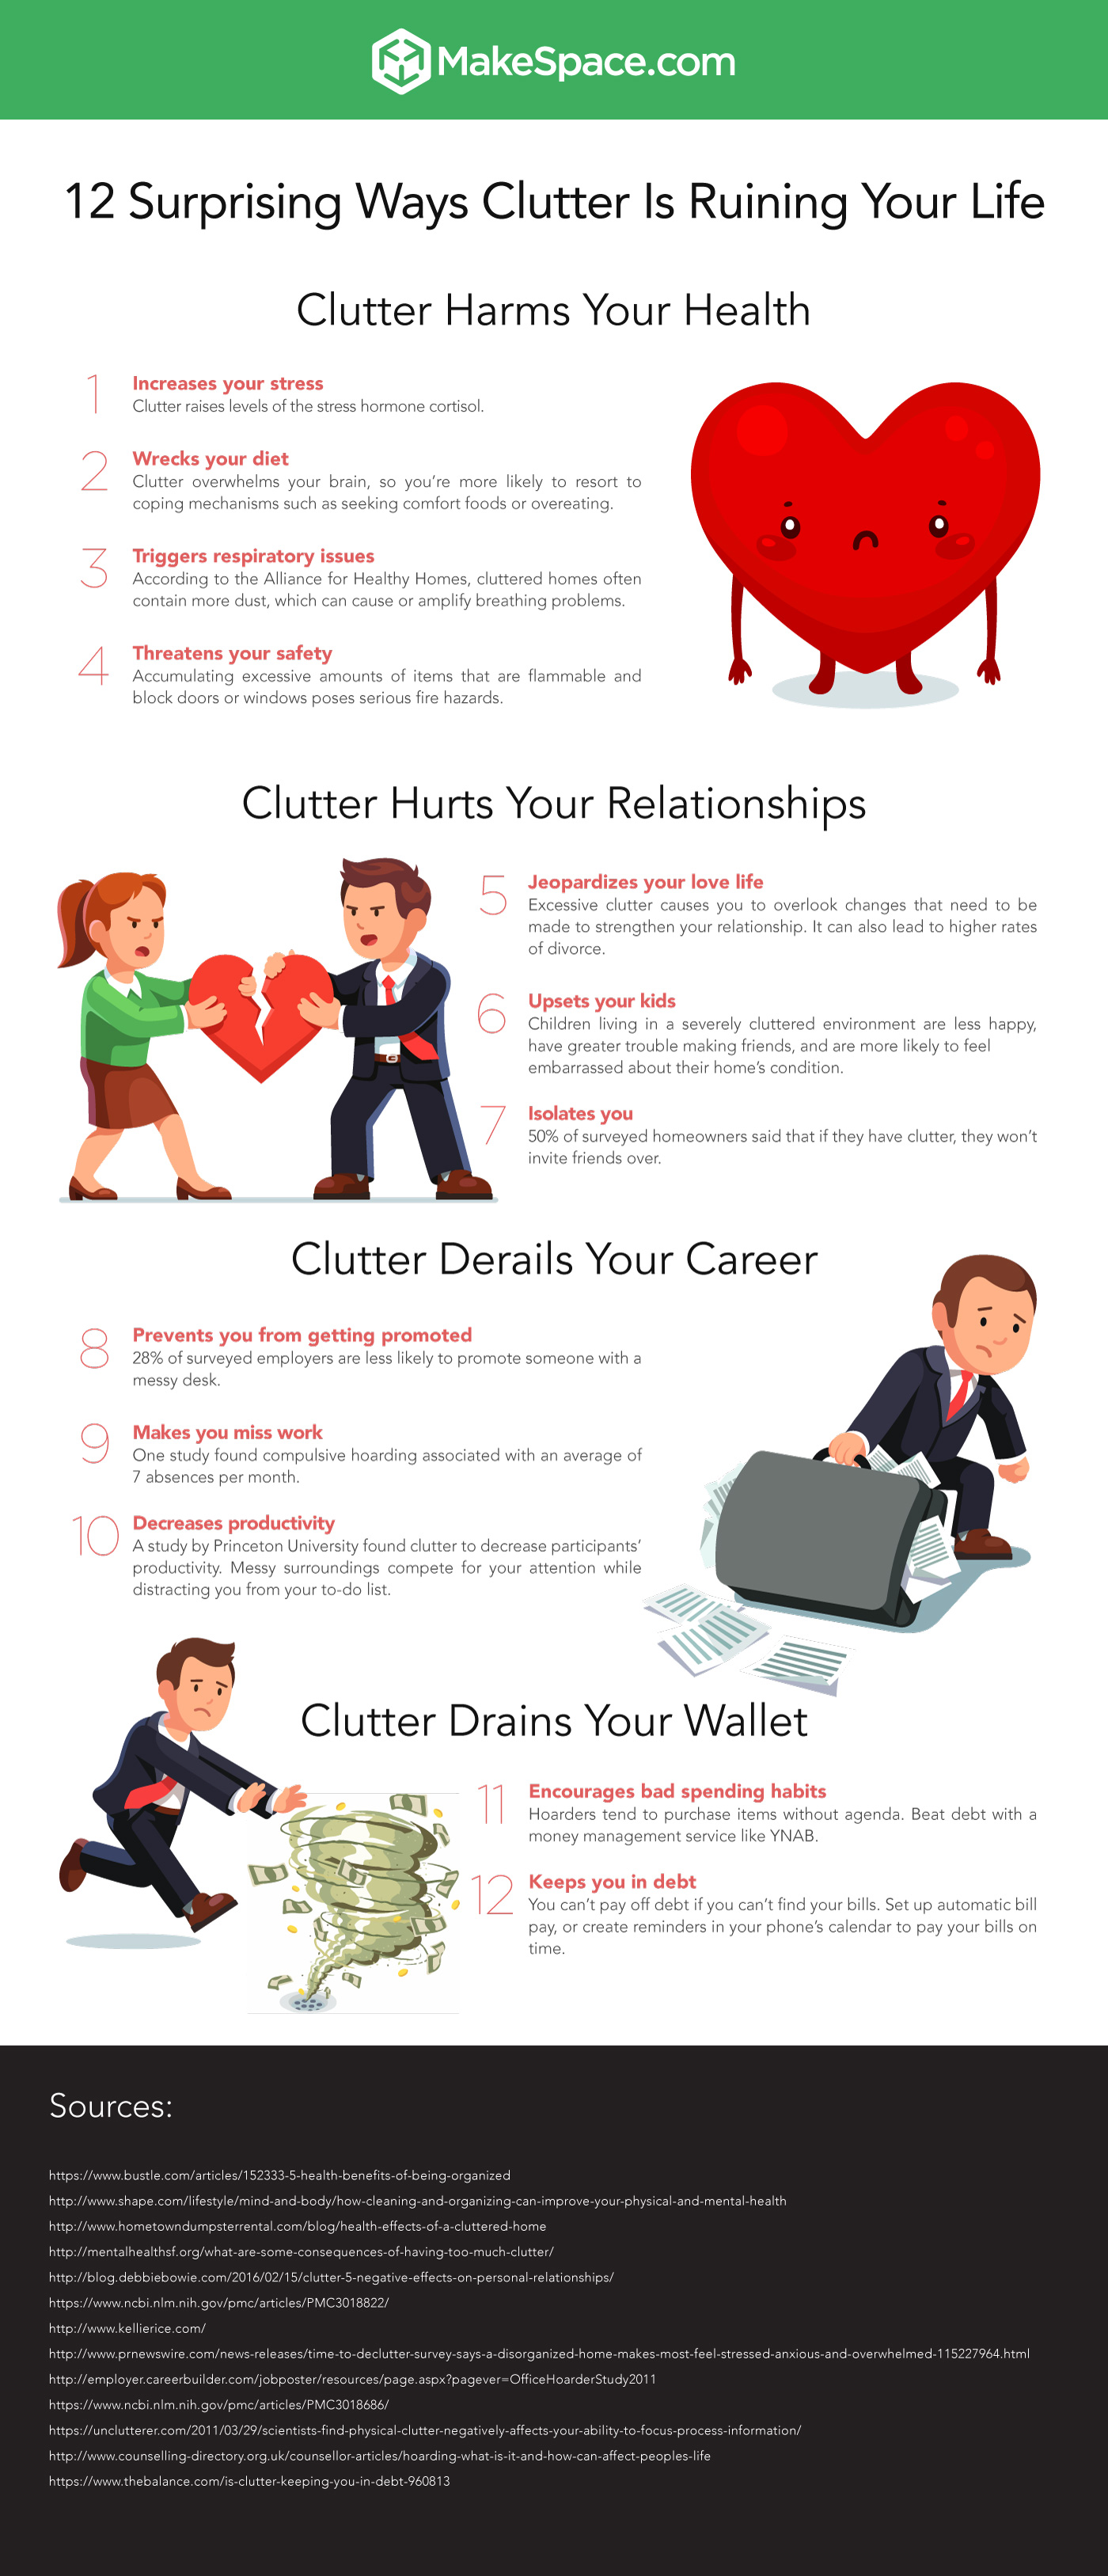 MakeSpace_Clutter Infographic_shared by_by Organised Chaos, Ireland's #1 organisation expert providing professional Home and Office organising and decluttering services in Dublin, Ireland and Virtual Organising services worldwide